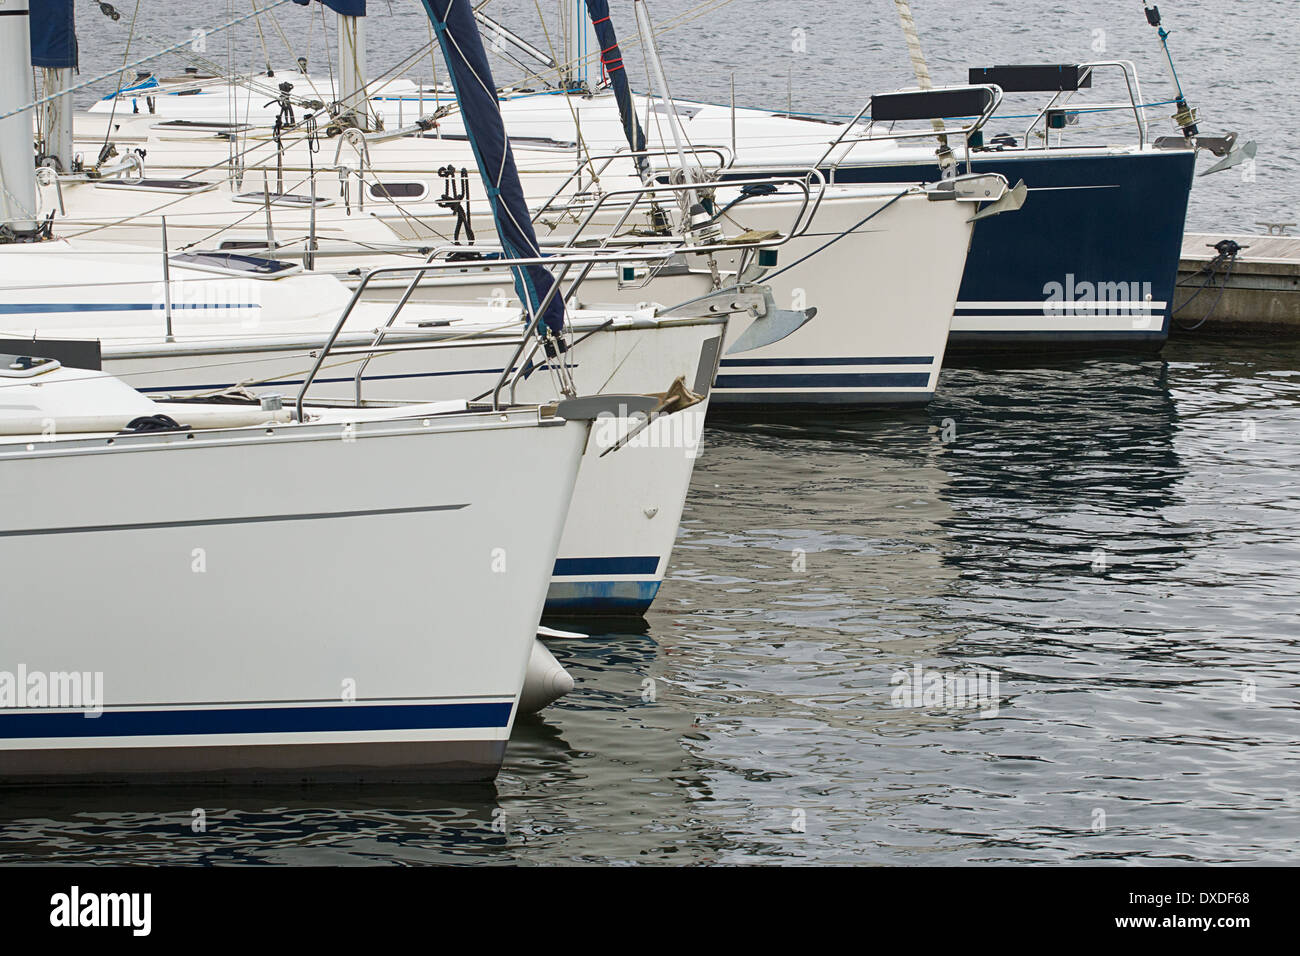 Used sail boats or yachts in a row for sale in a marina which buys and sells sailing equipment. - Stock Image